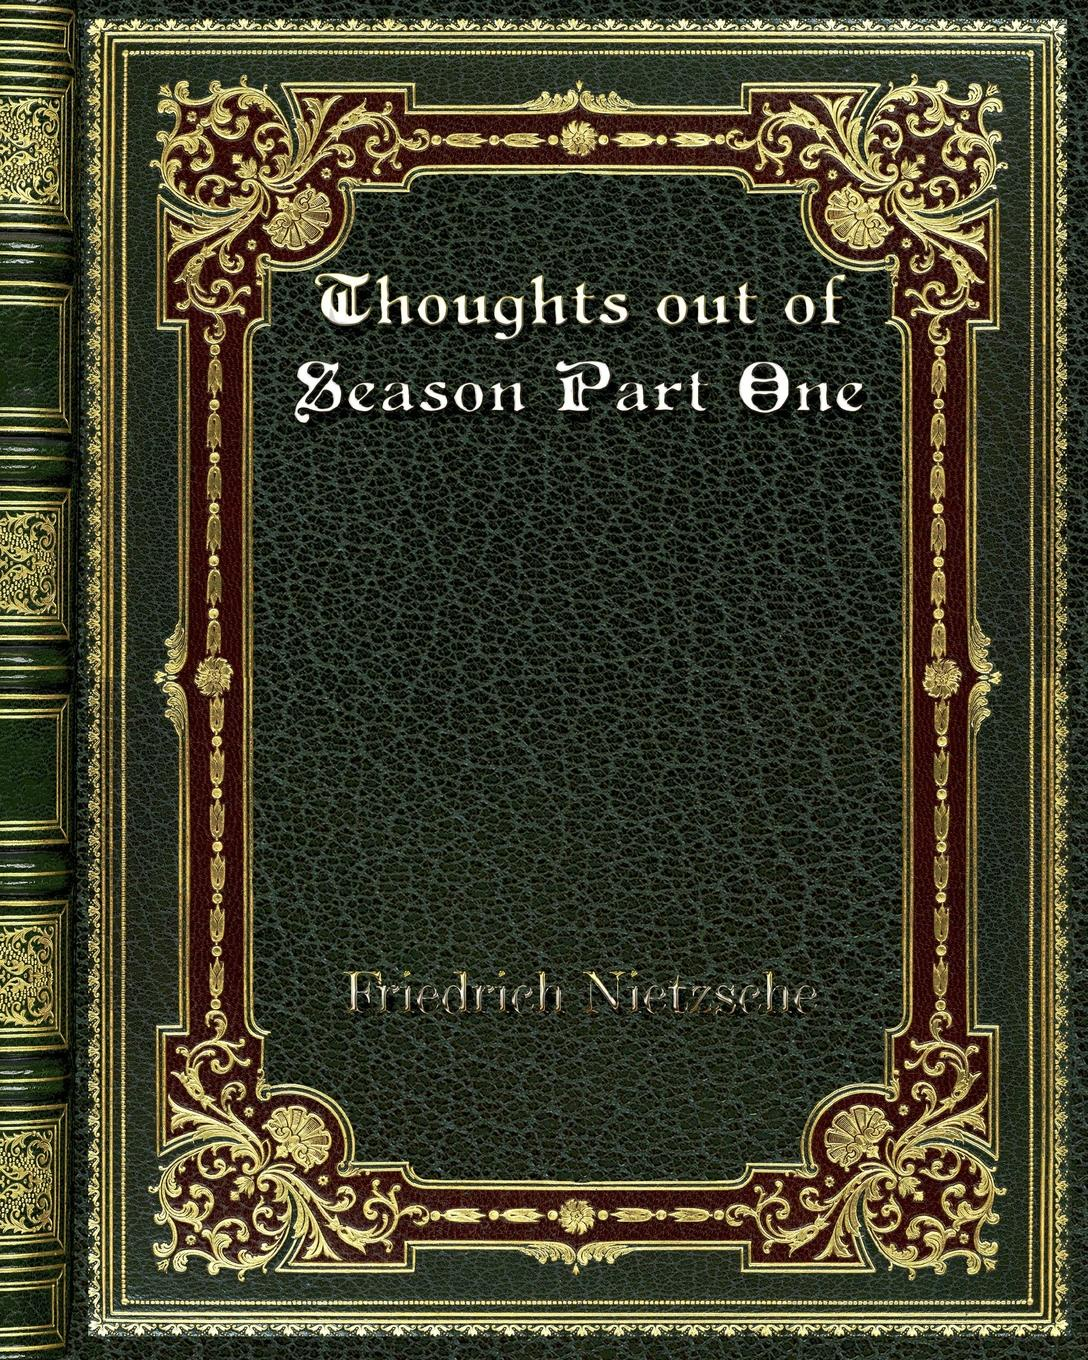 Friedrich Nietzsche Thoughts out of Season Part One cyrino rome season one